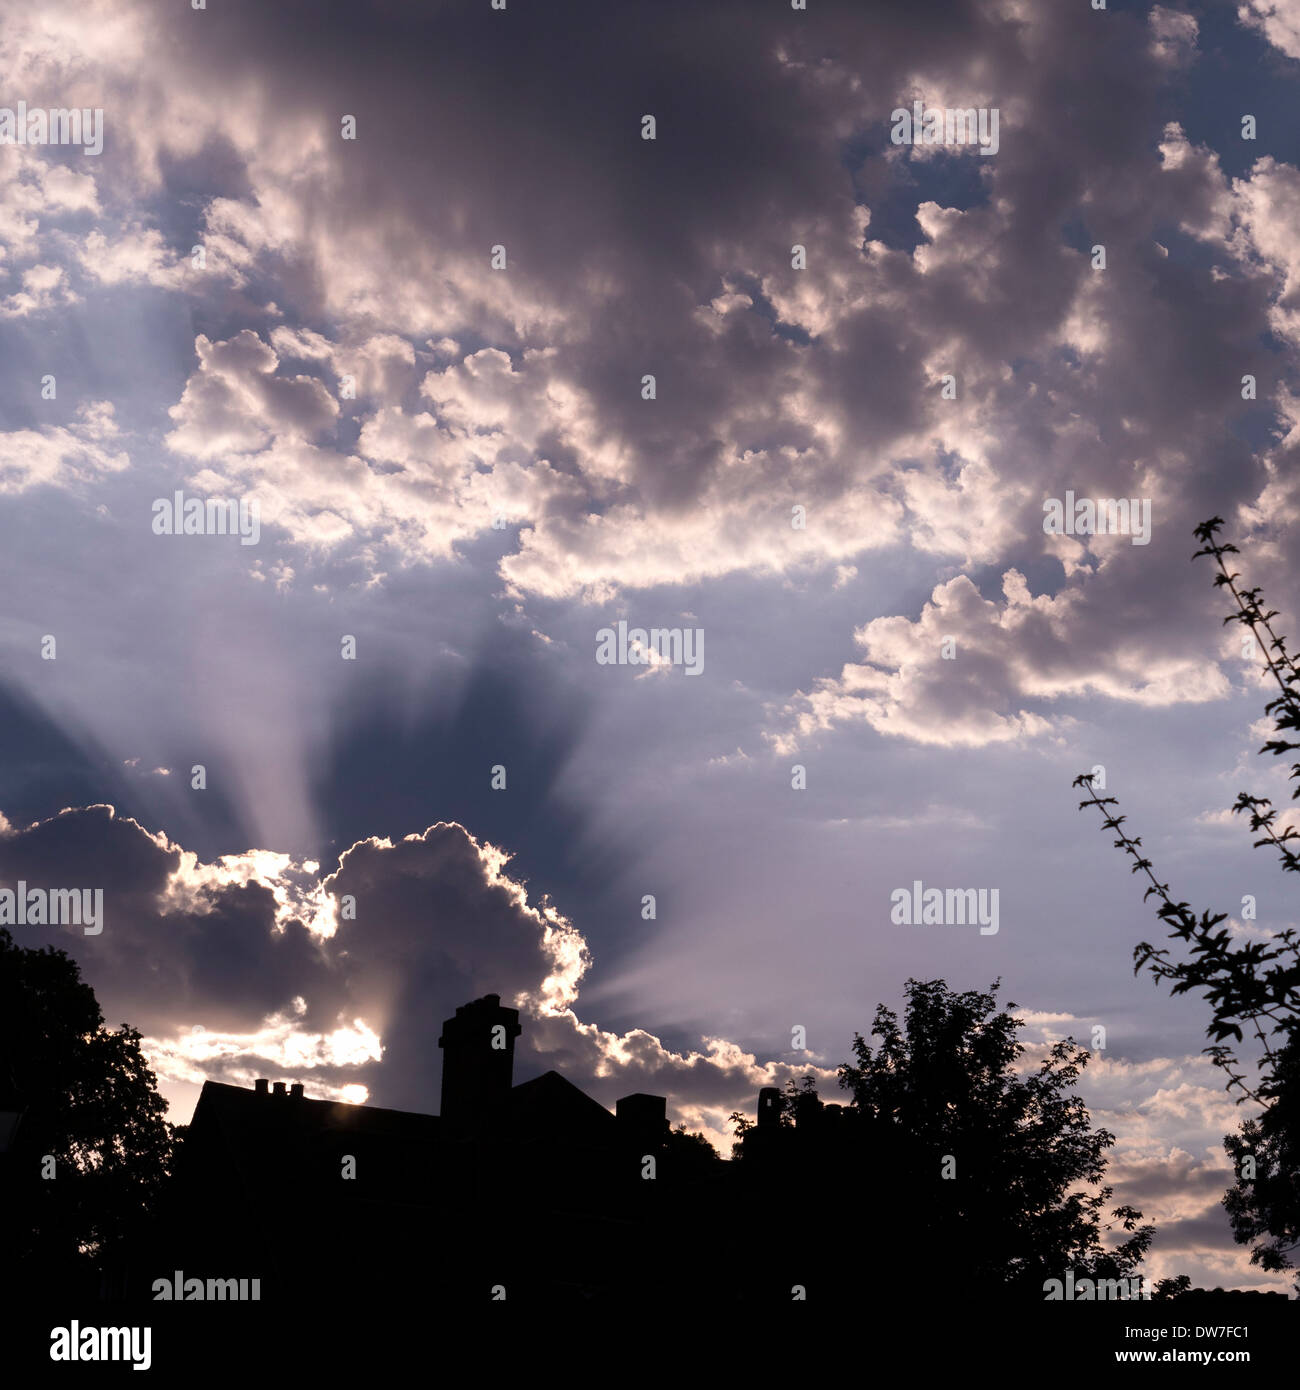 Radiating sun beams and cloud shadows with house silhouette against blue sky - Stock Image